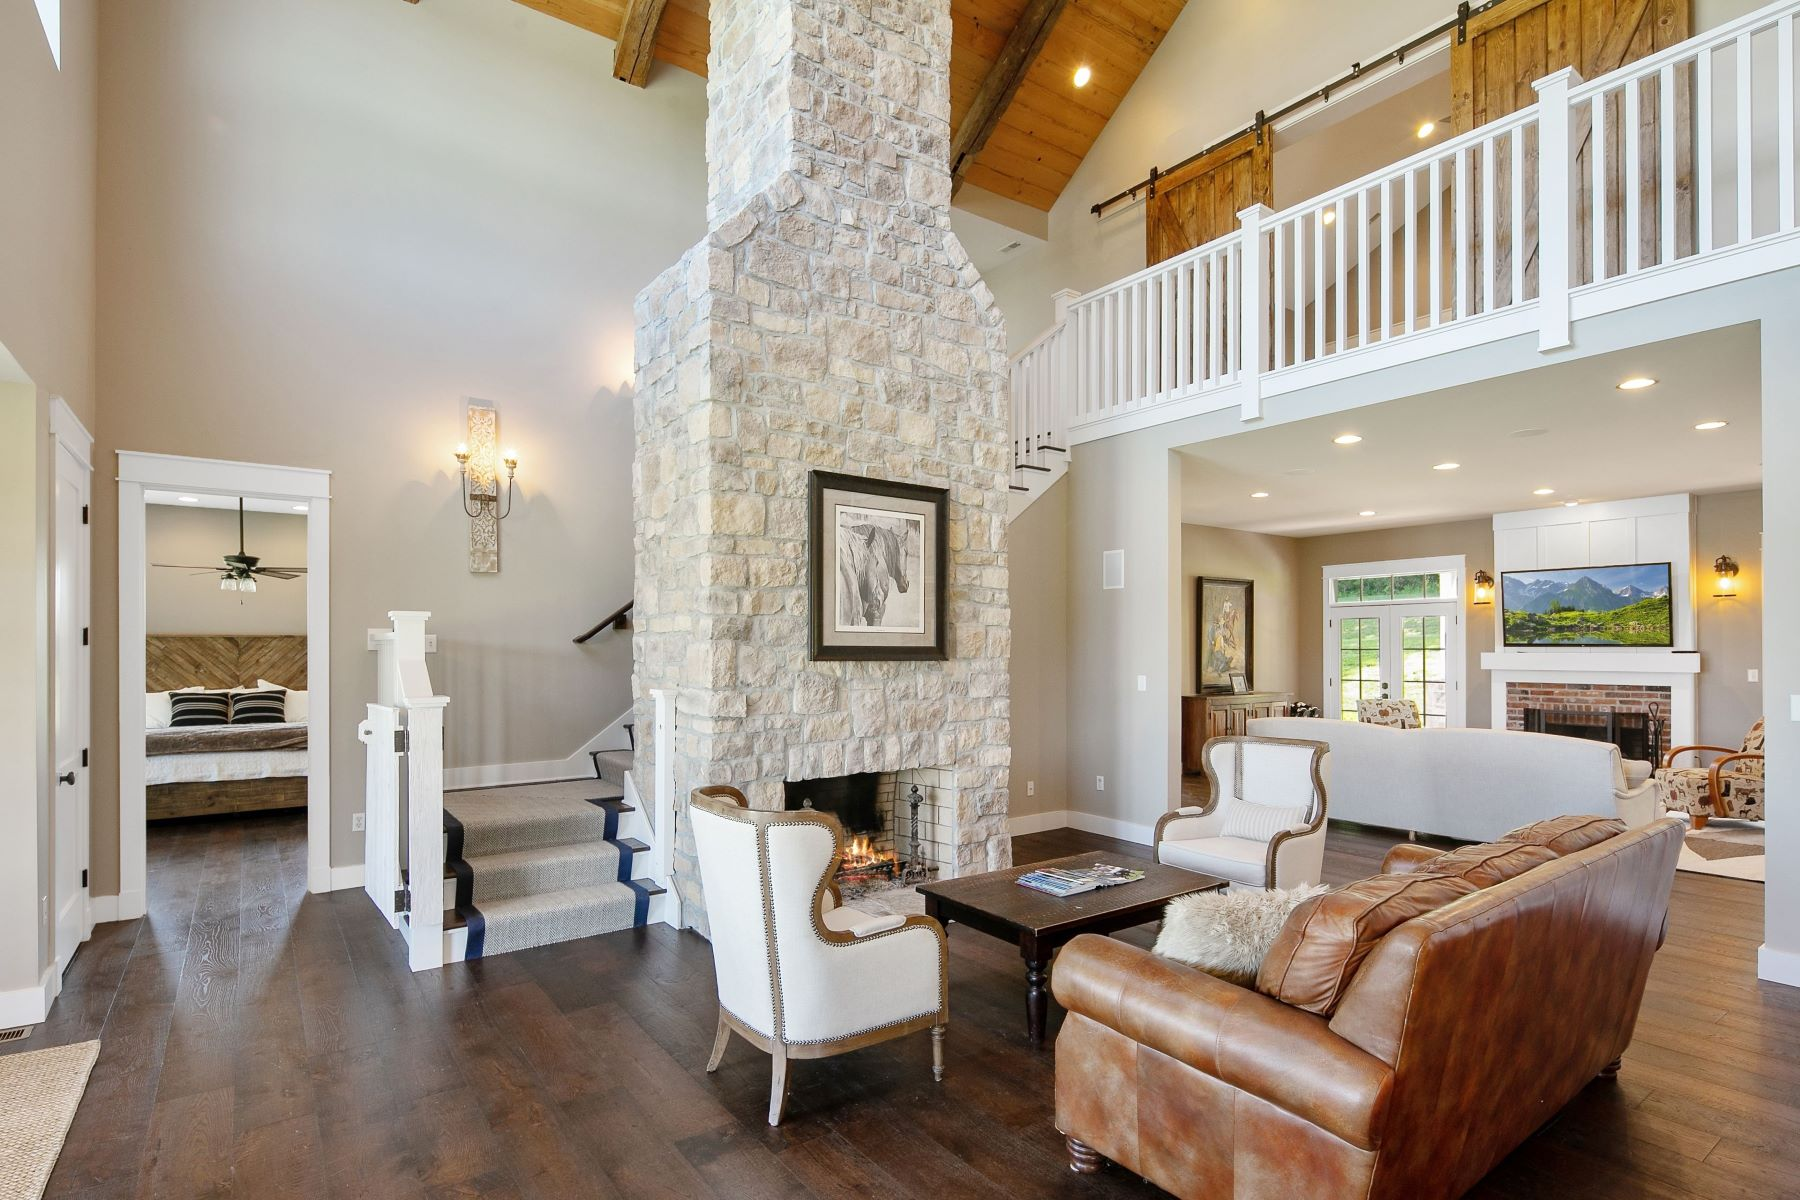 Additional photo for property listing at Luxurious Equestrian Estate on 14 Acres 96 High Trails Eureka, Missouri 63025 United States